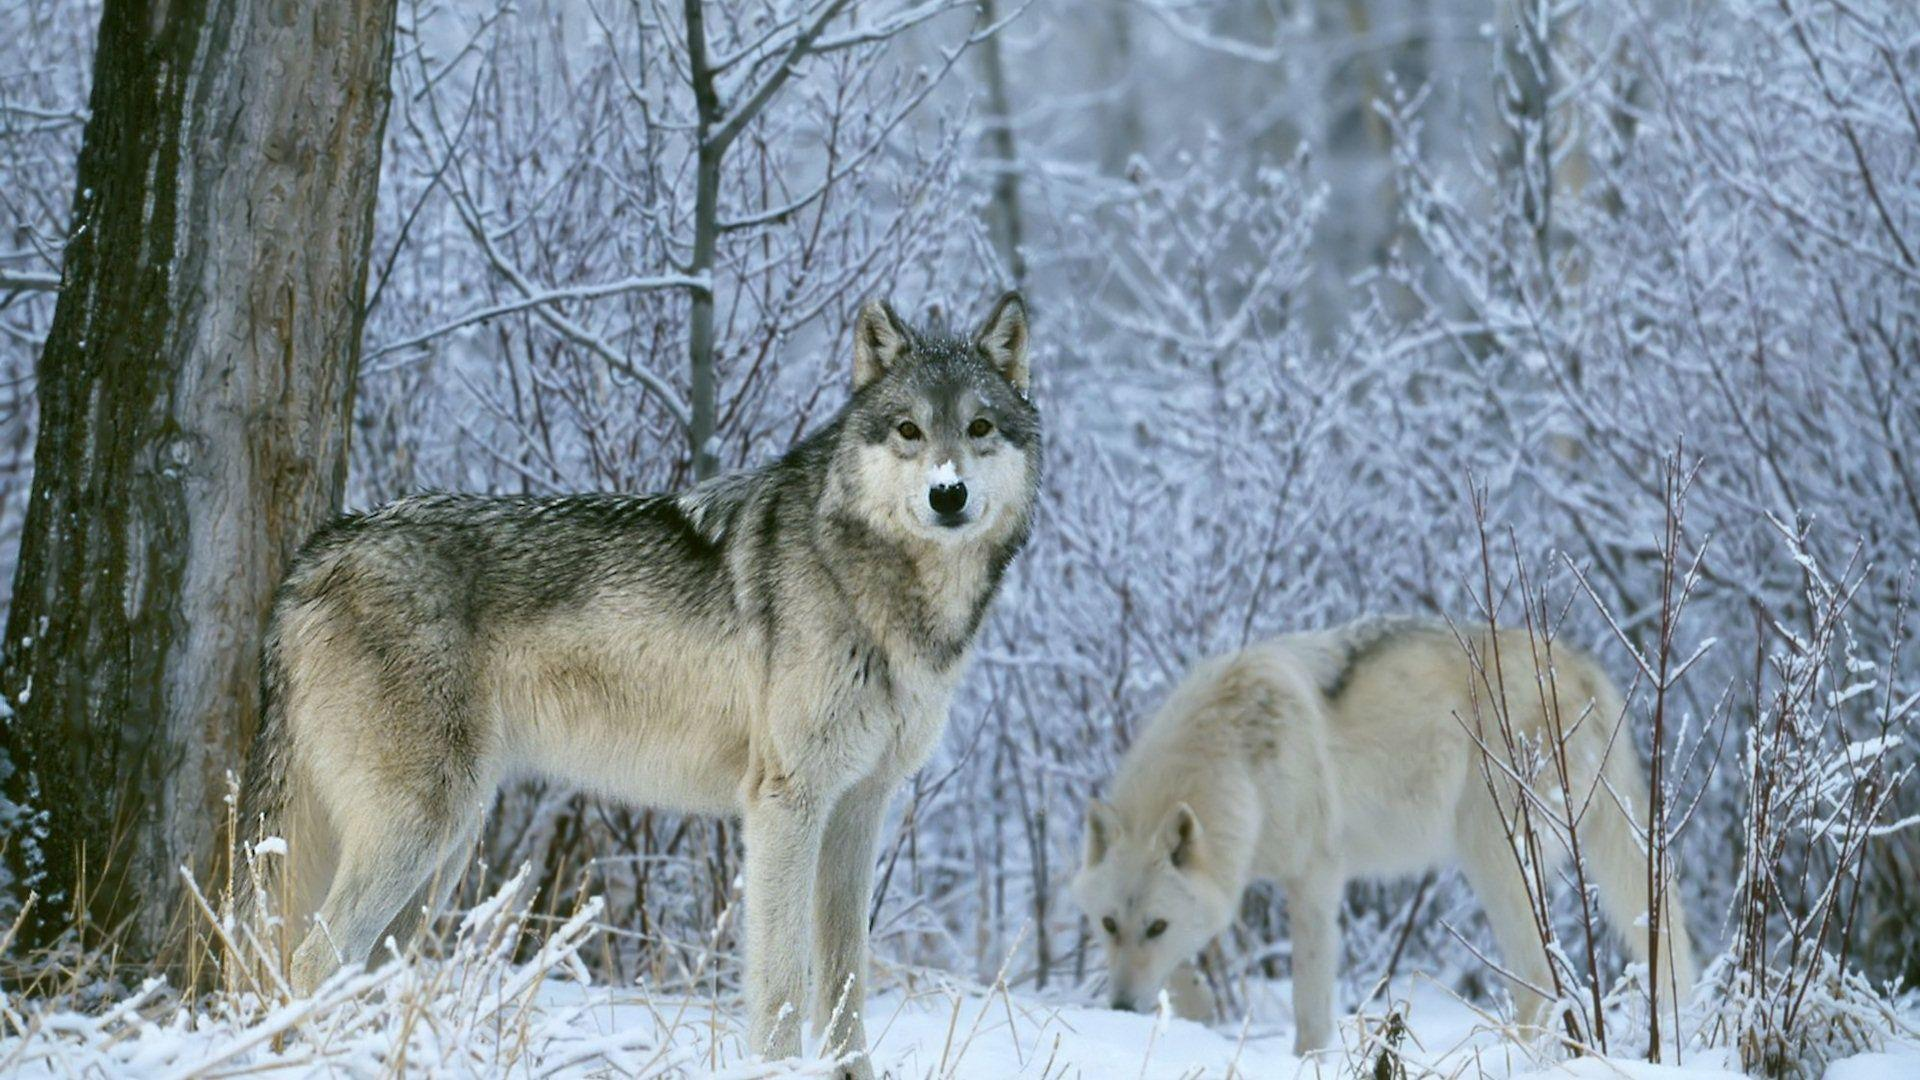 Winter Wolves Wallpaper 1920x1080 - 1649220